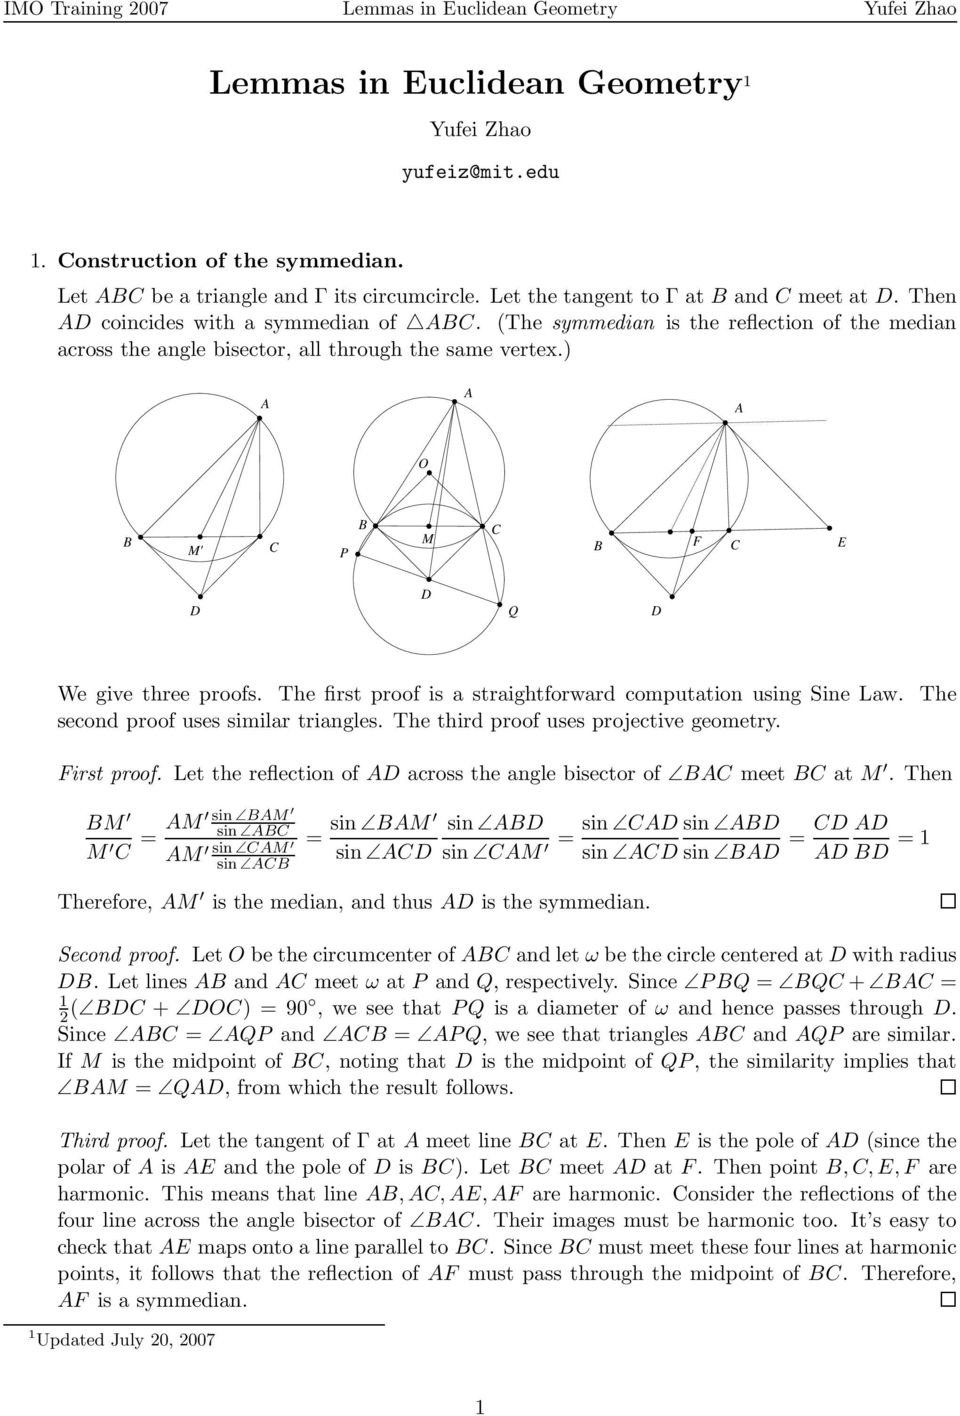 Lemmas in Euclidean Geometry 1 - PDF